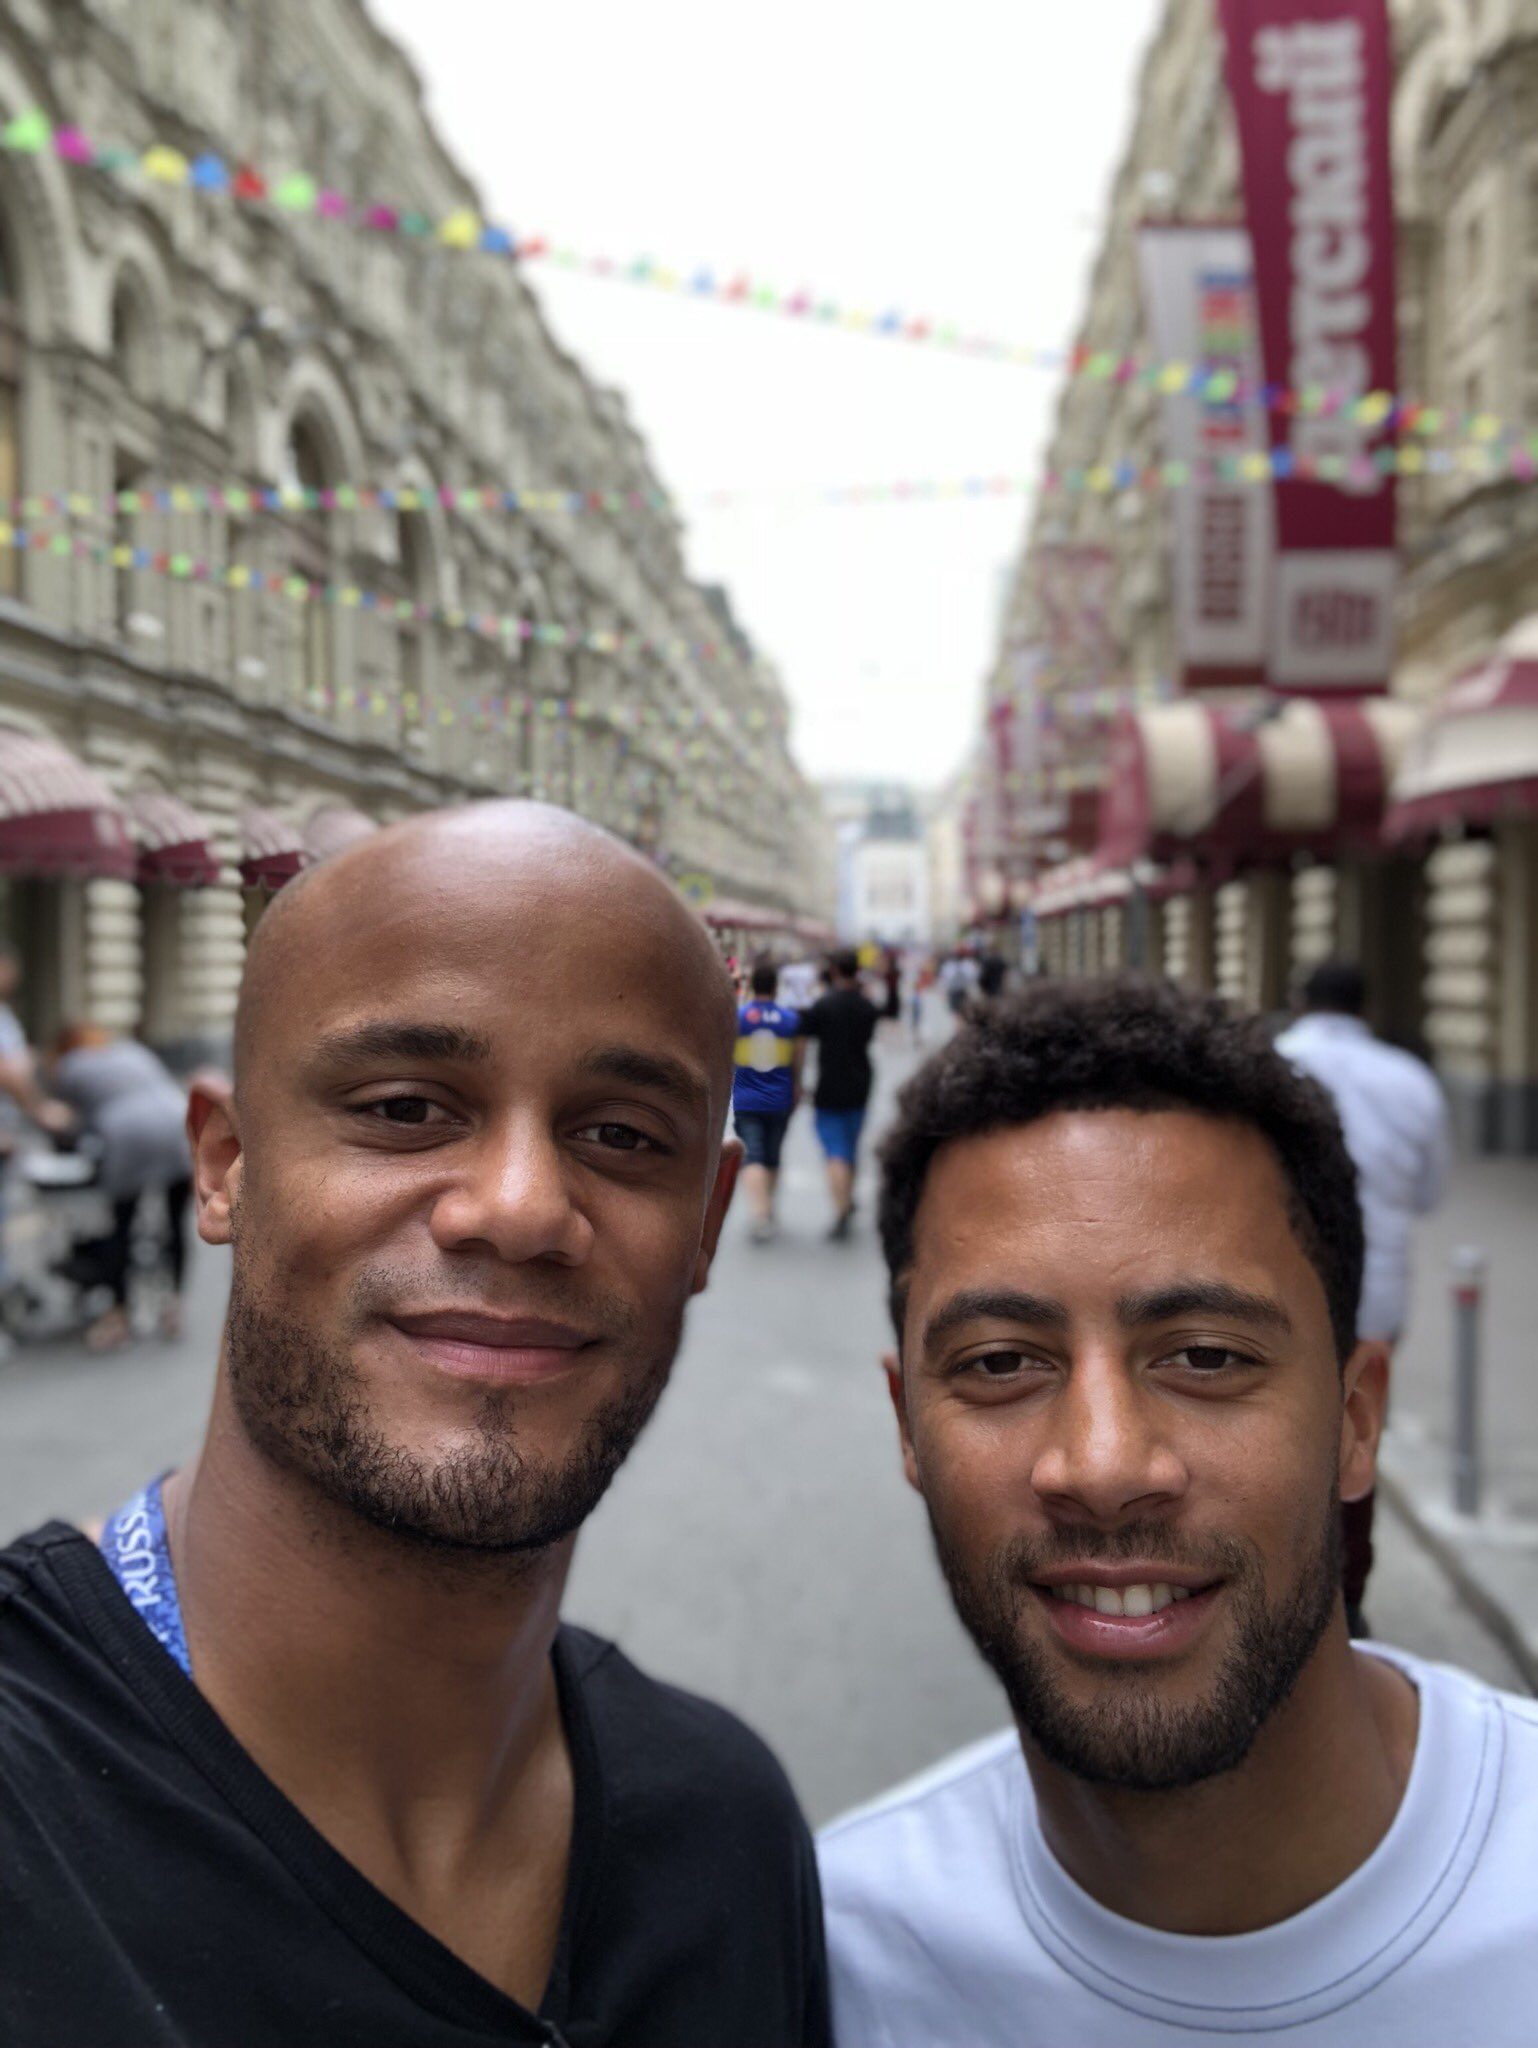 Visiting the wonderful Moscow with my bro. #Tourists #Belgium #RDC #Mali #REDTOGETHER https://t.co/ntDGxPXyXa